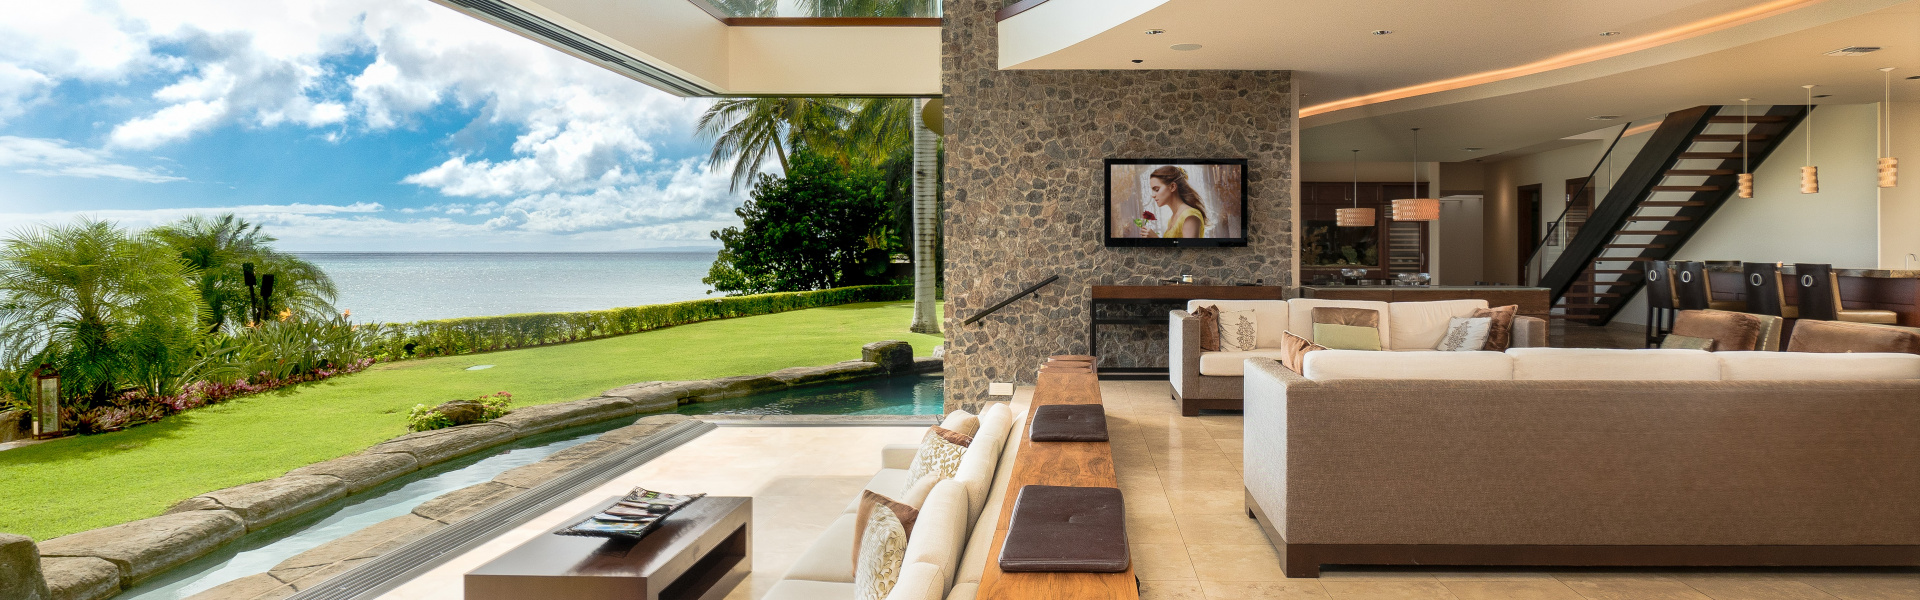 Smart home installation by eDesign Group for Maui